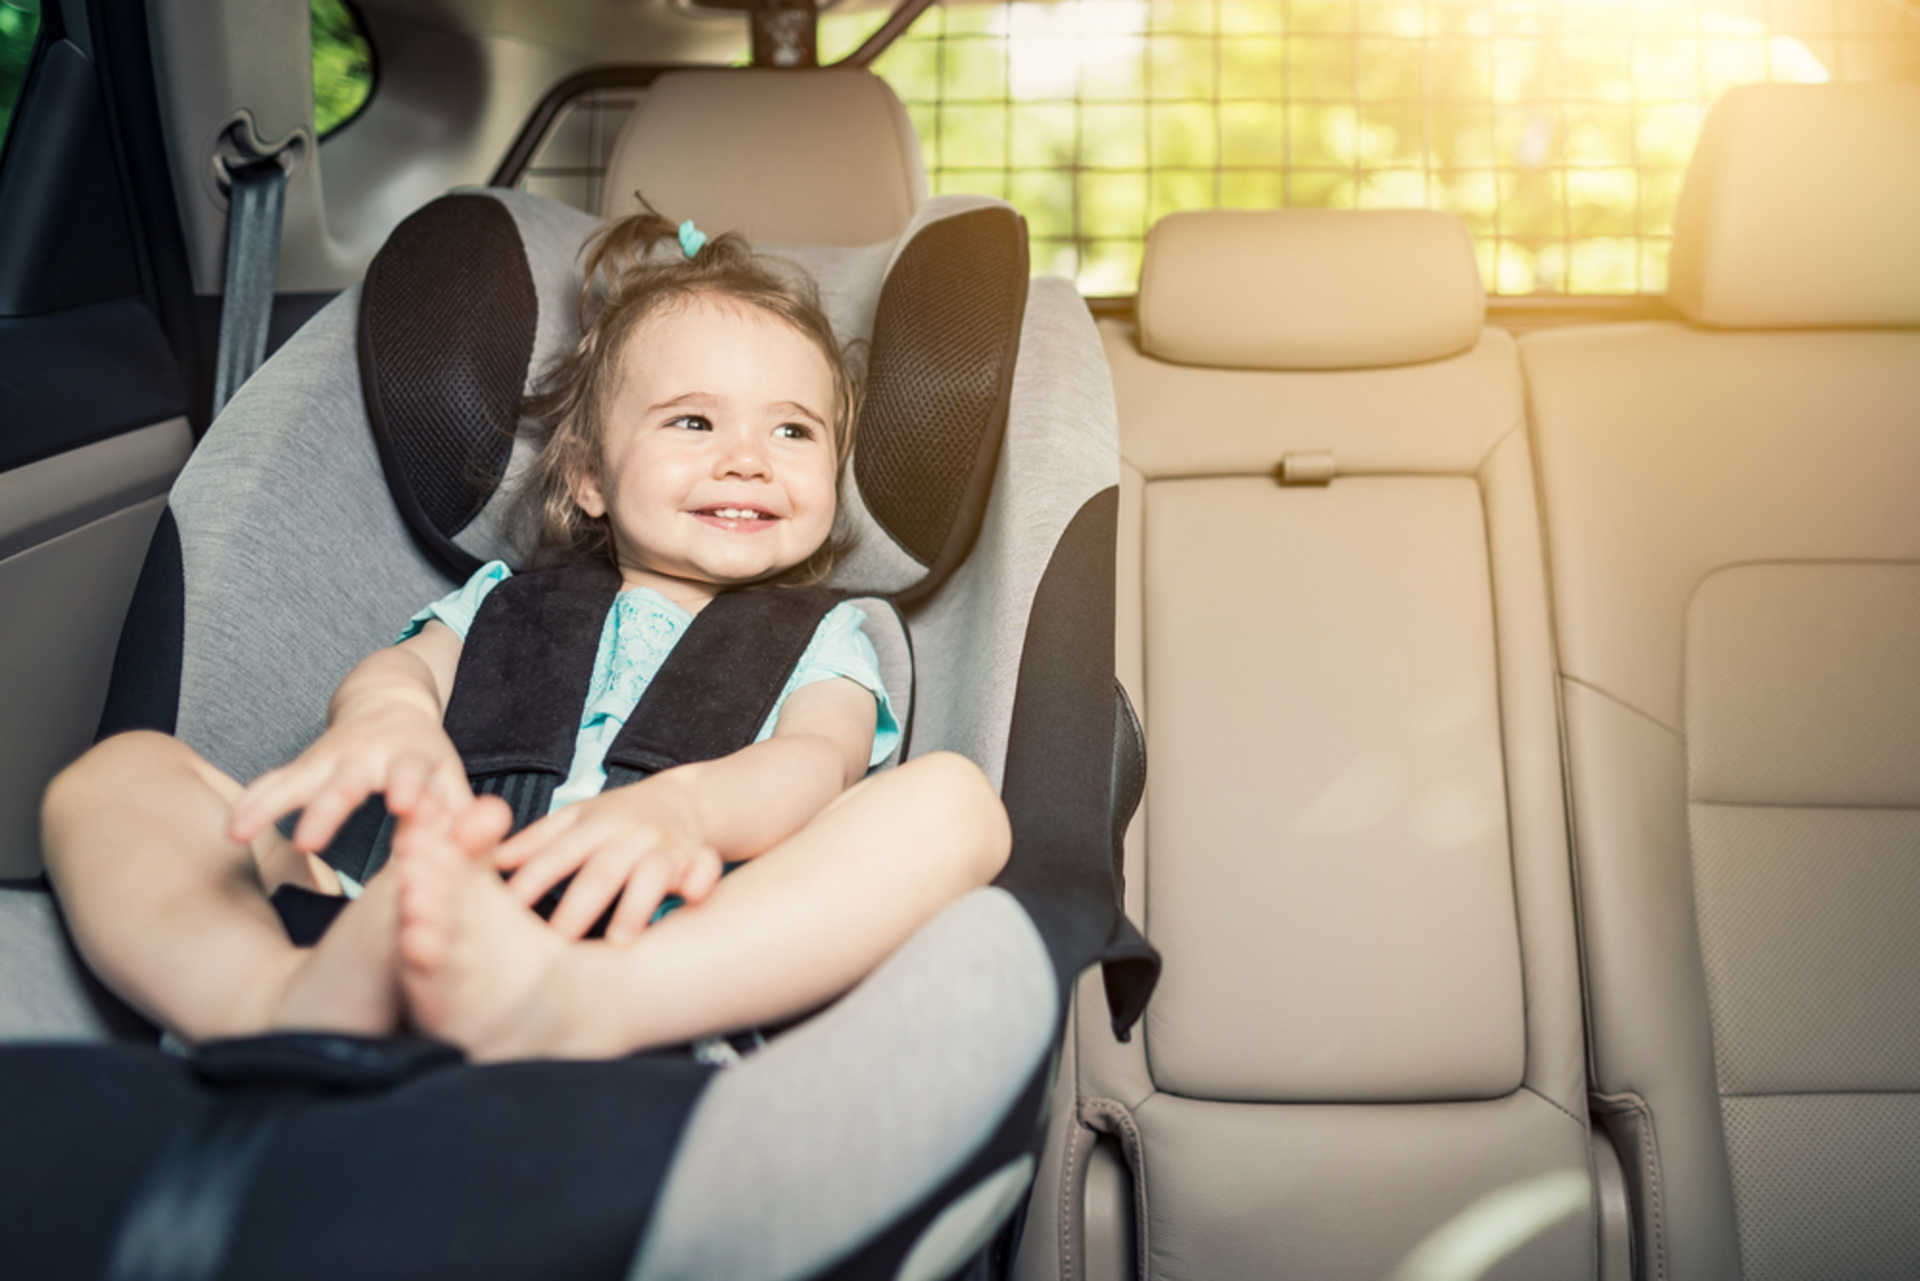 stock-photo-beautyful-smiling-baby-girl-fastened-with-security-belt-in-safety-car-seat-693112123